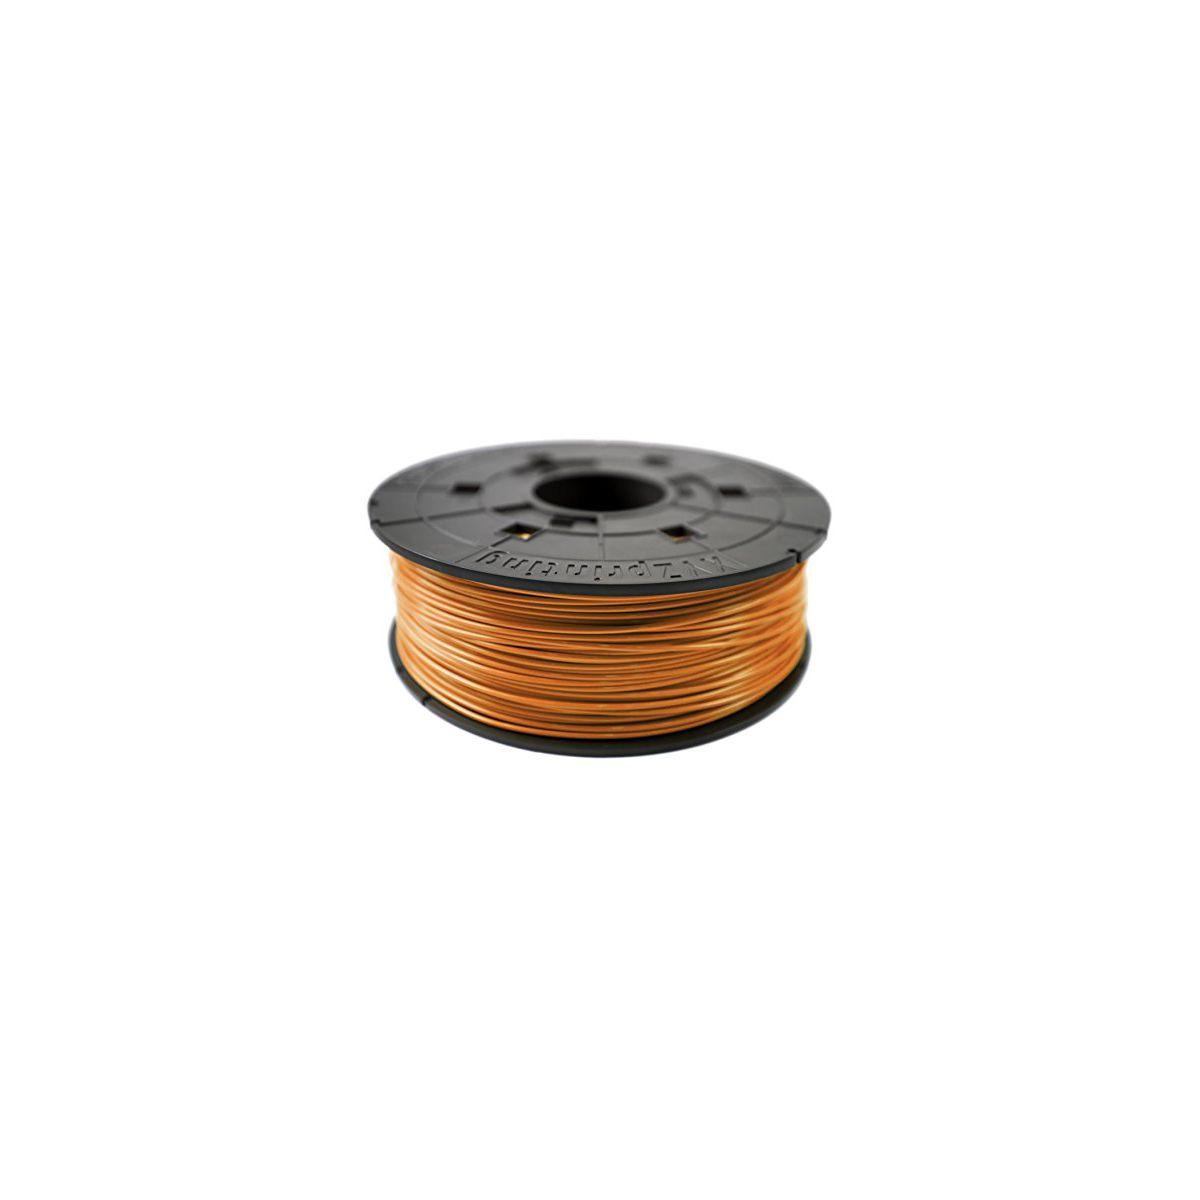 Filament 3d xyz printing bobine recharge pla orange clair - 2%...